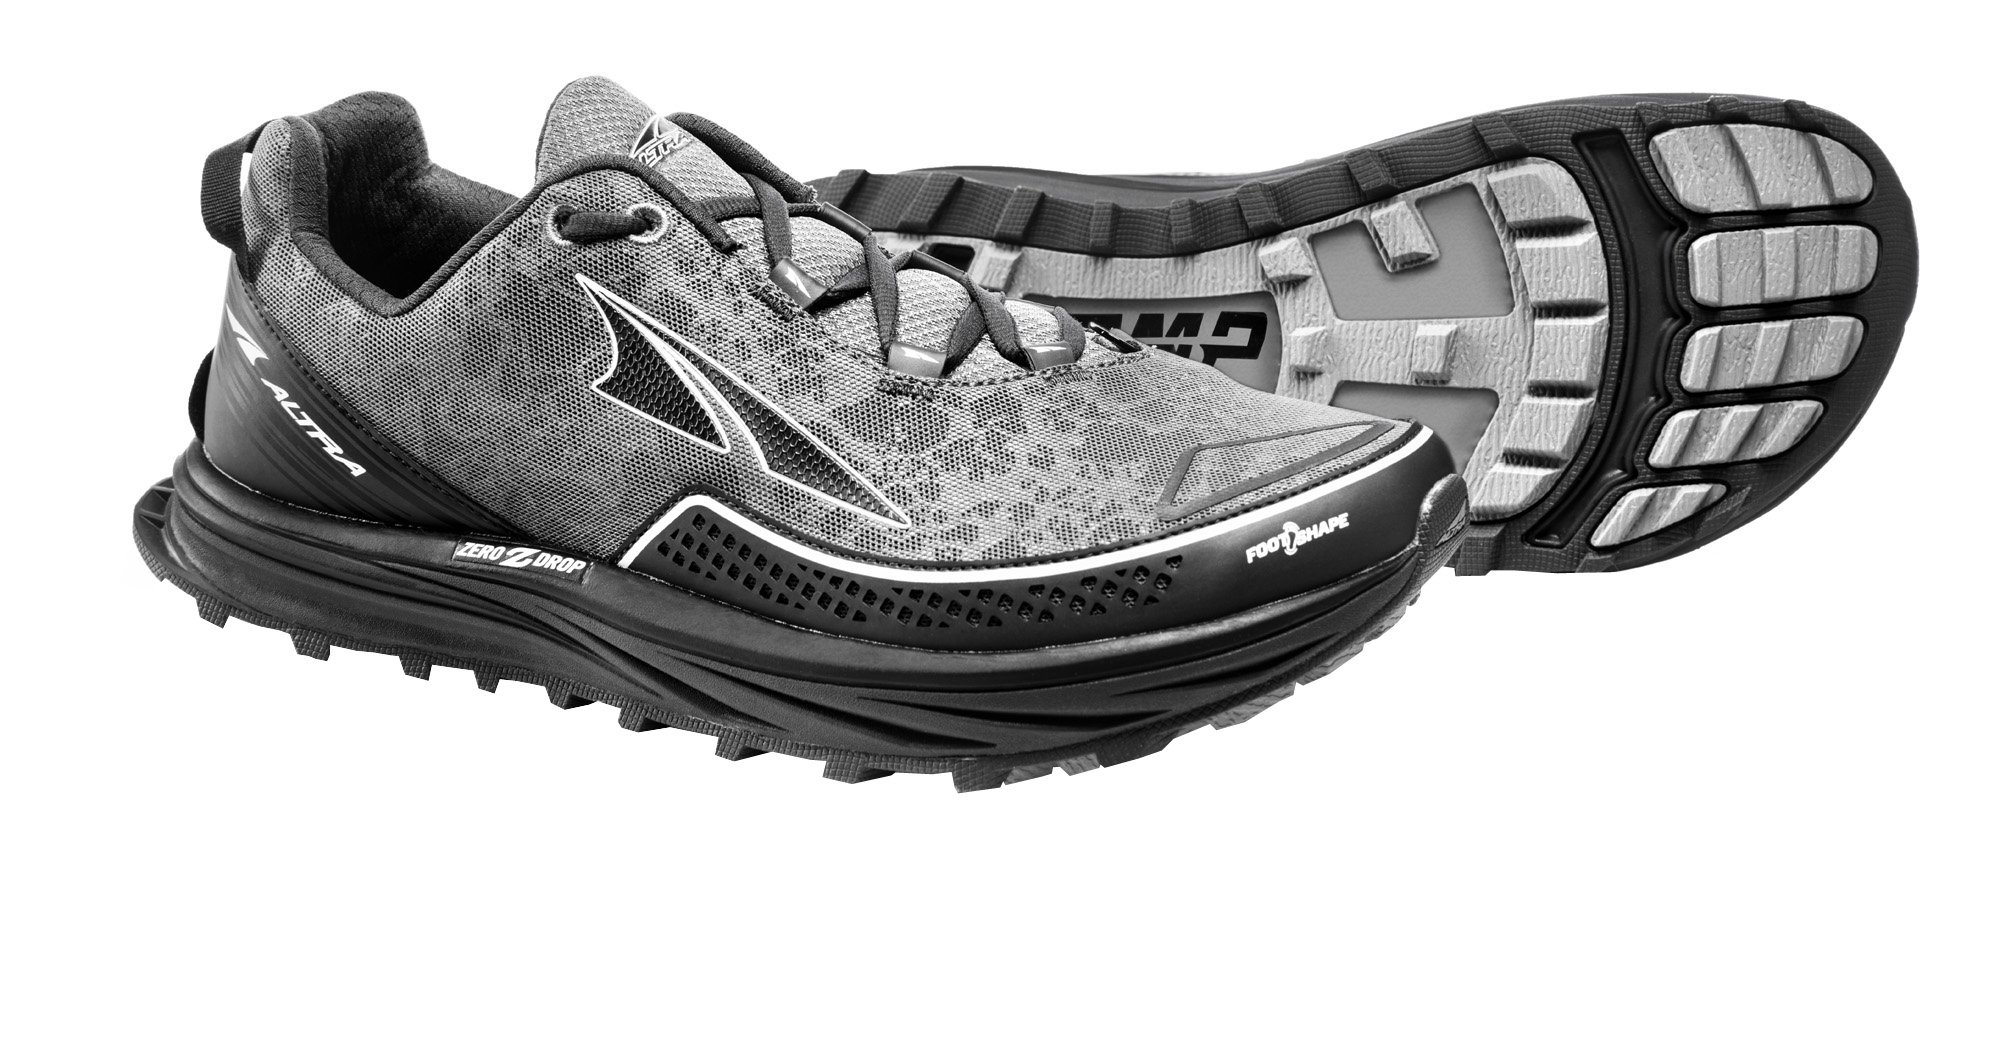 Altra AFM1757F Men's TIMP Trail Running Shoe, Gray - 10 D(M) US by Altra